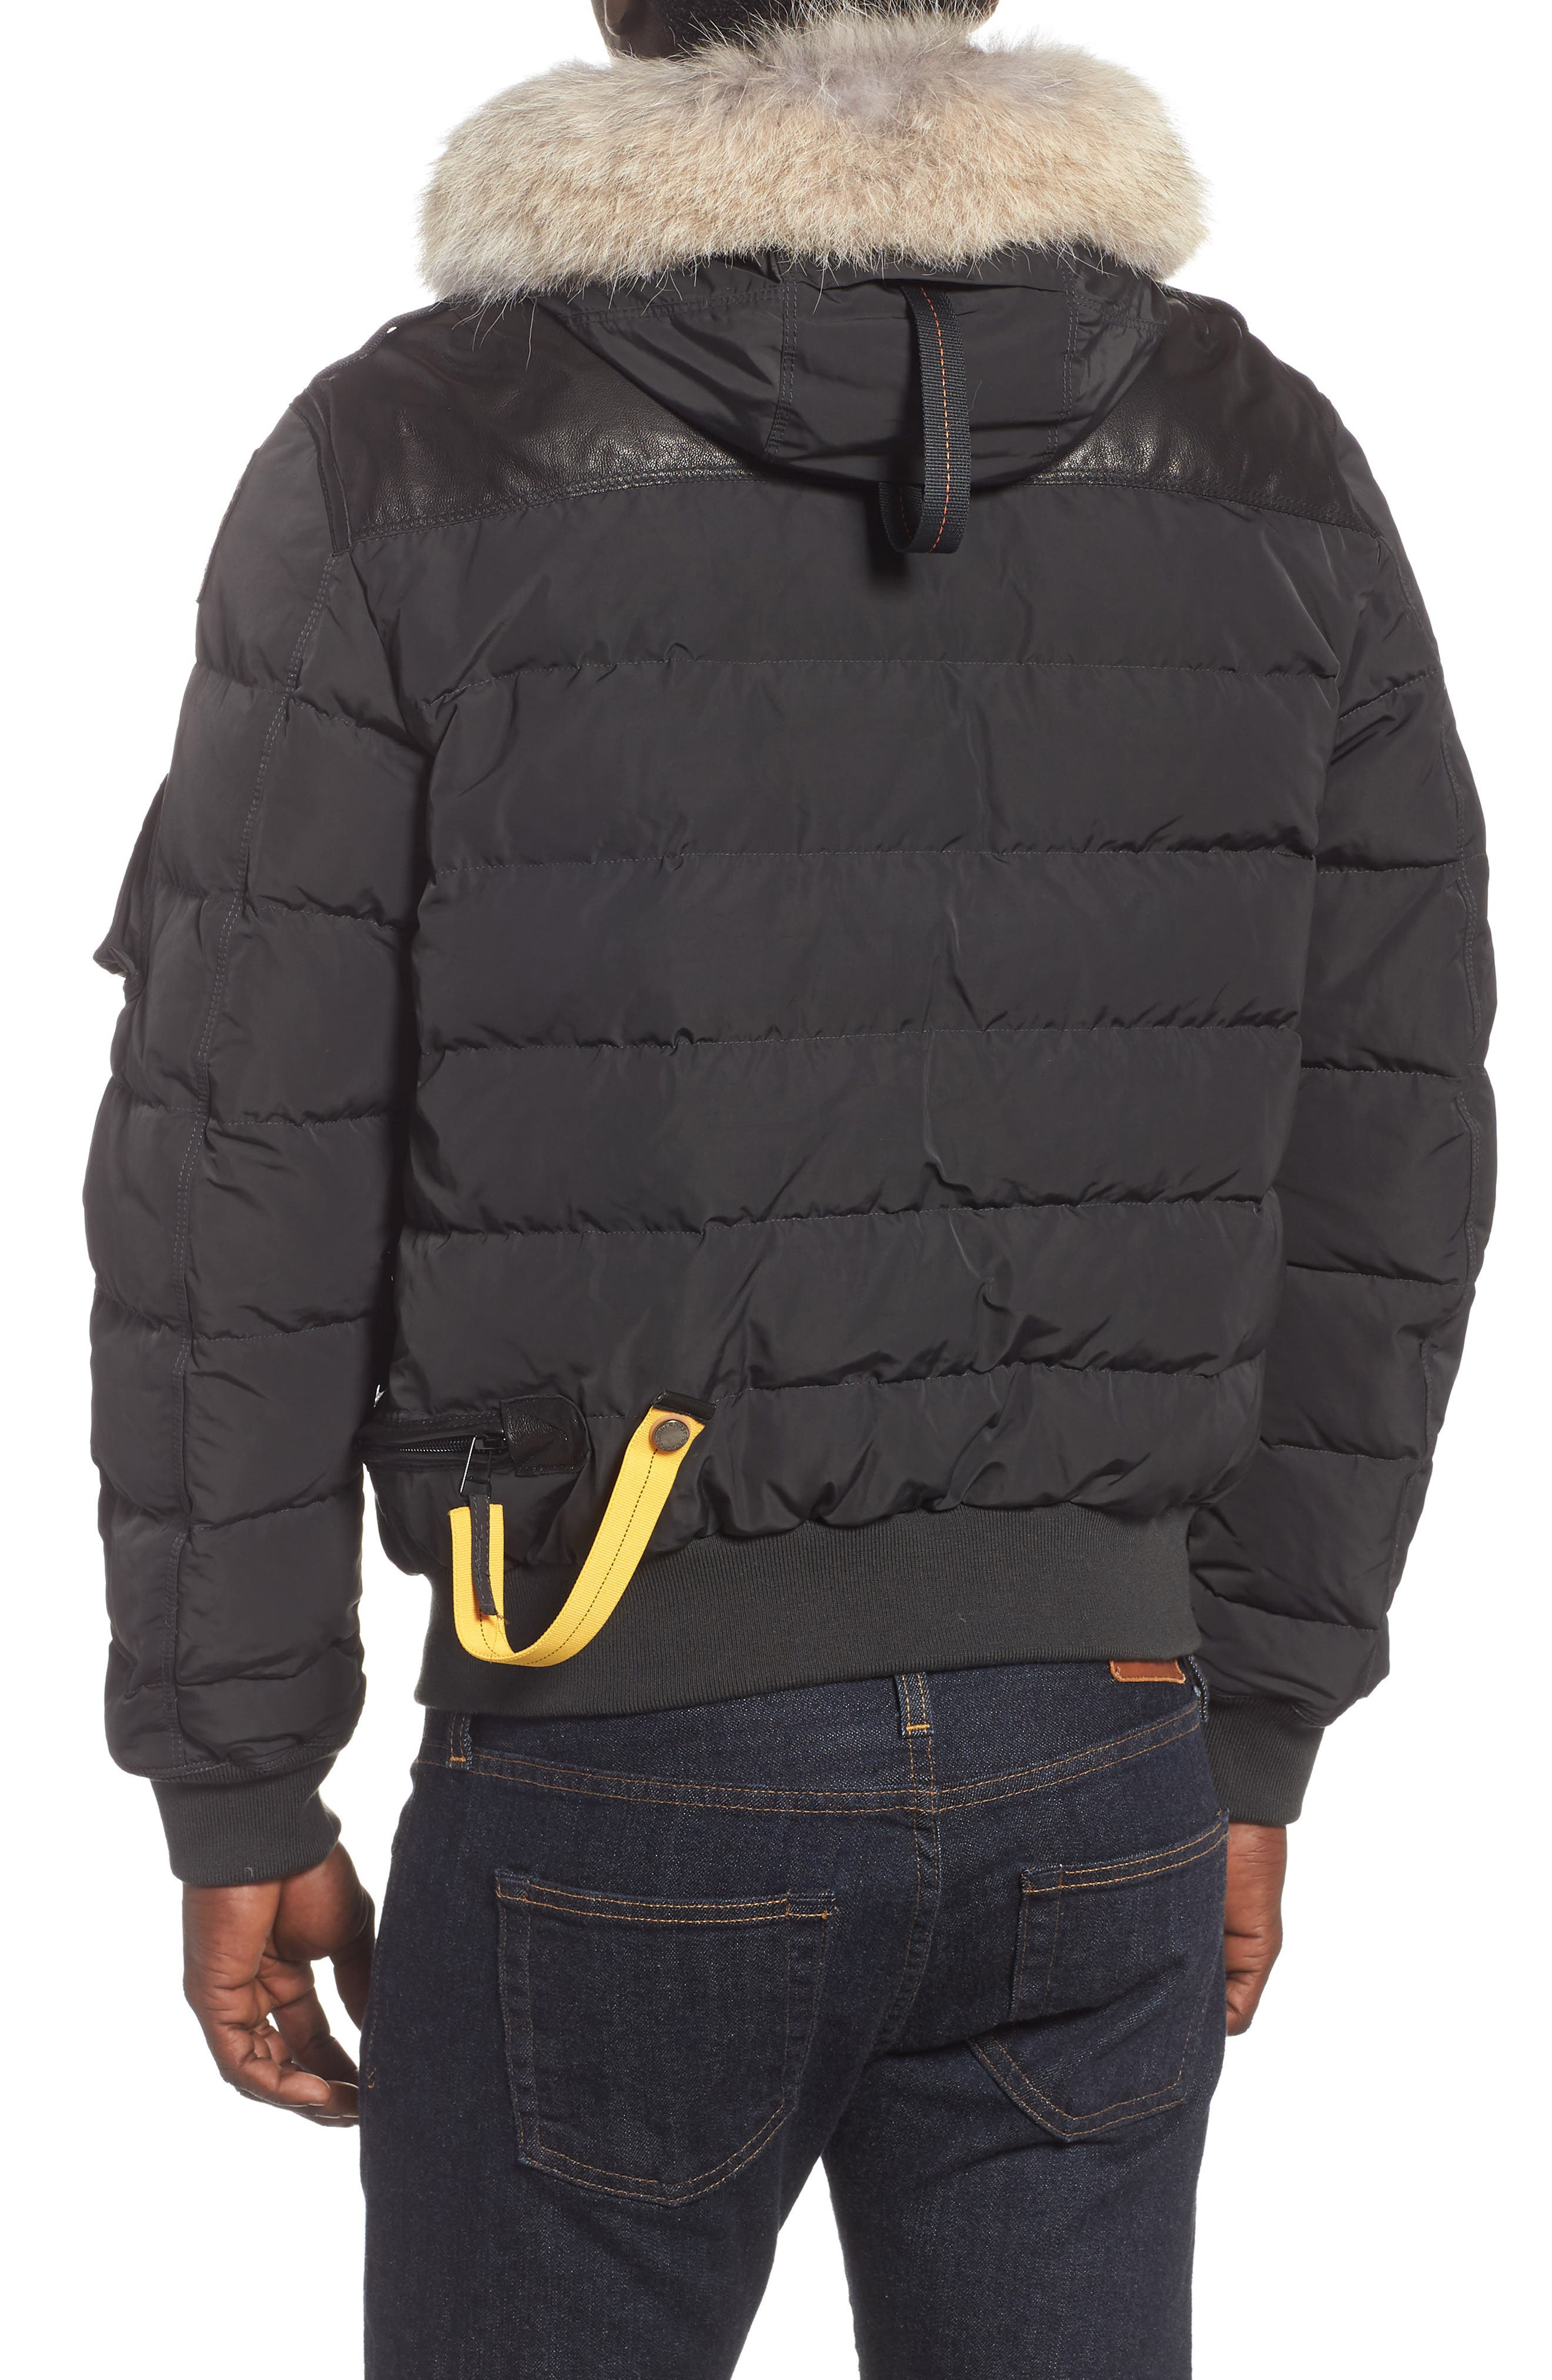 Grizzly Down Bomber Jacket with Genuine Coyote Fur Trim,                             Alternate thumbnail 2, color,                             060